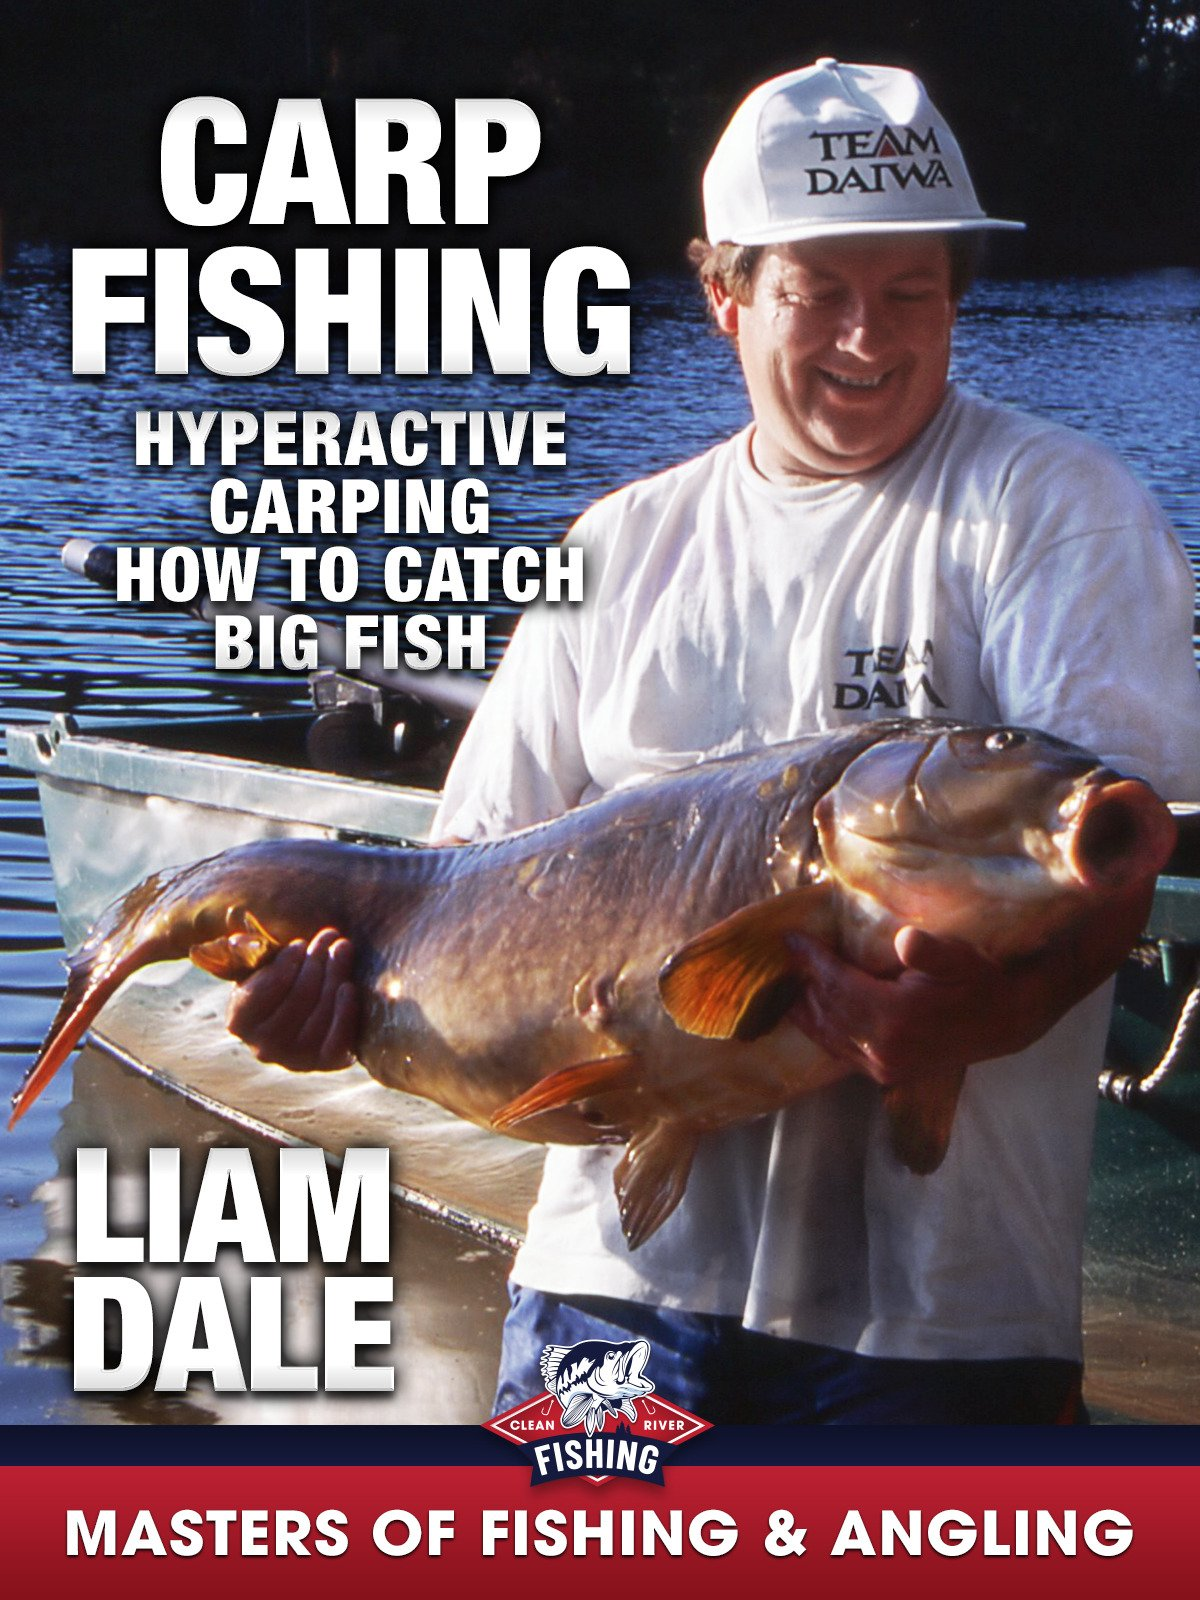 Carp Fishing: Hyperactive Carping, How to Catch Big Fish